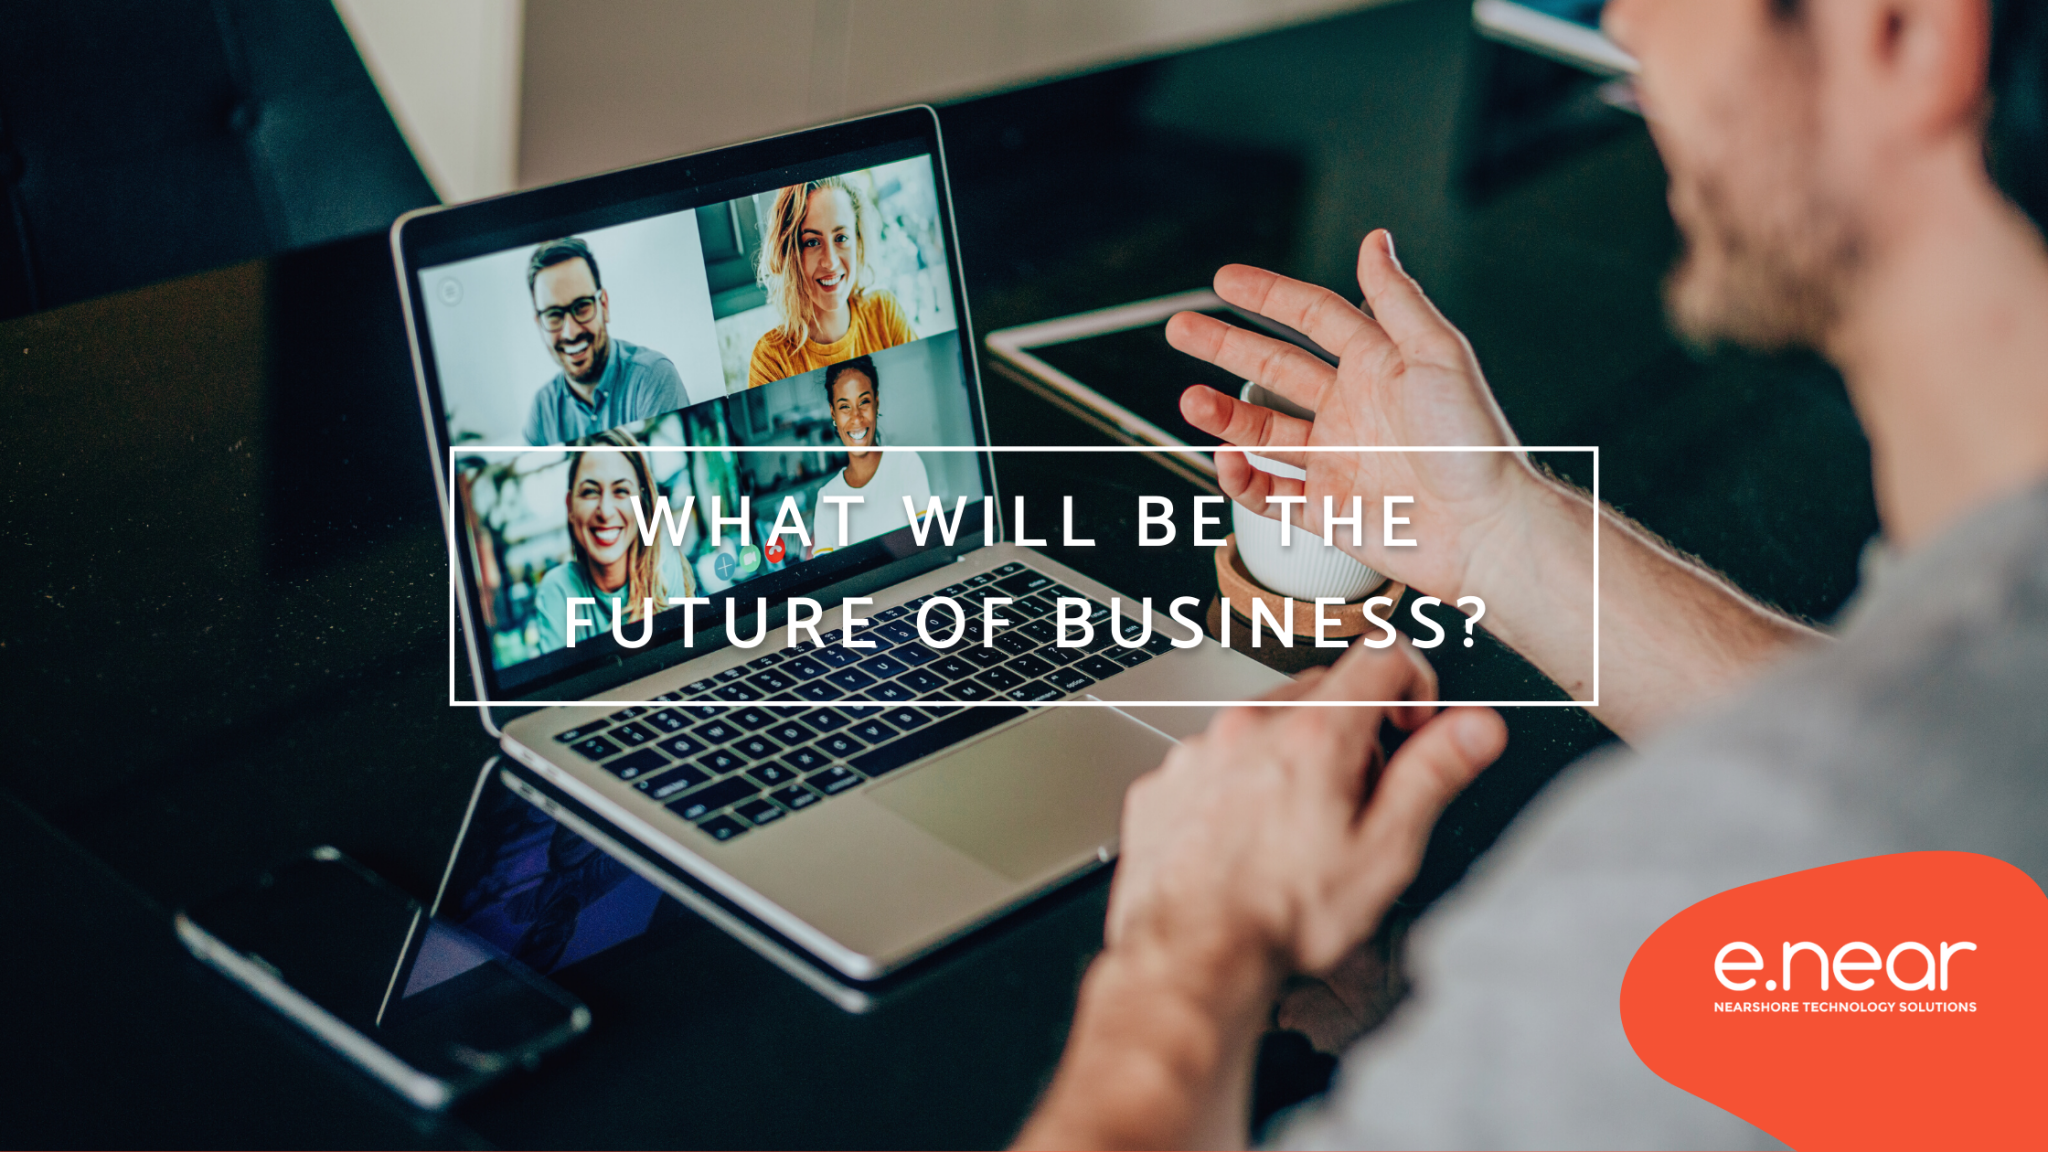 What will be the future of business?